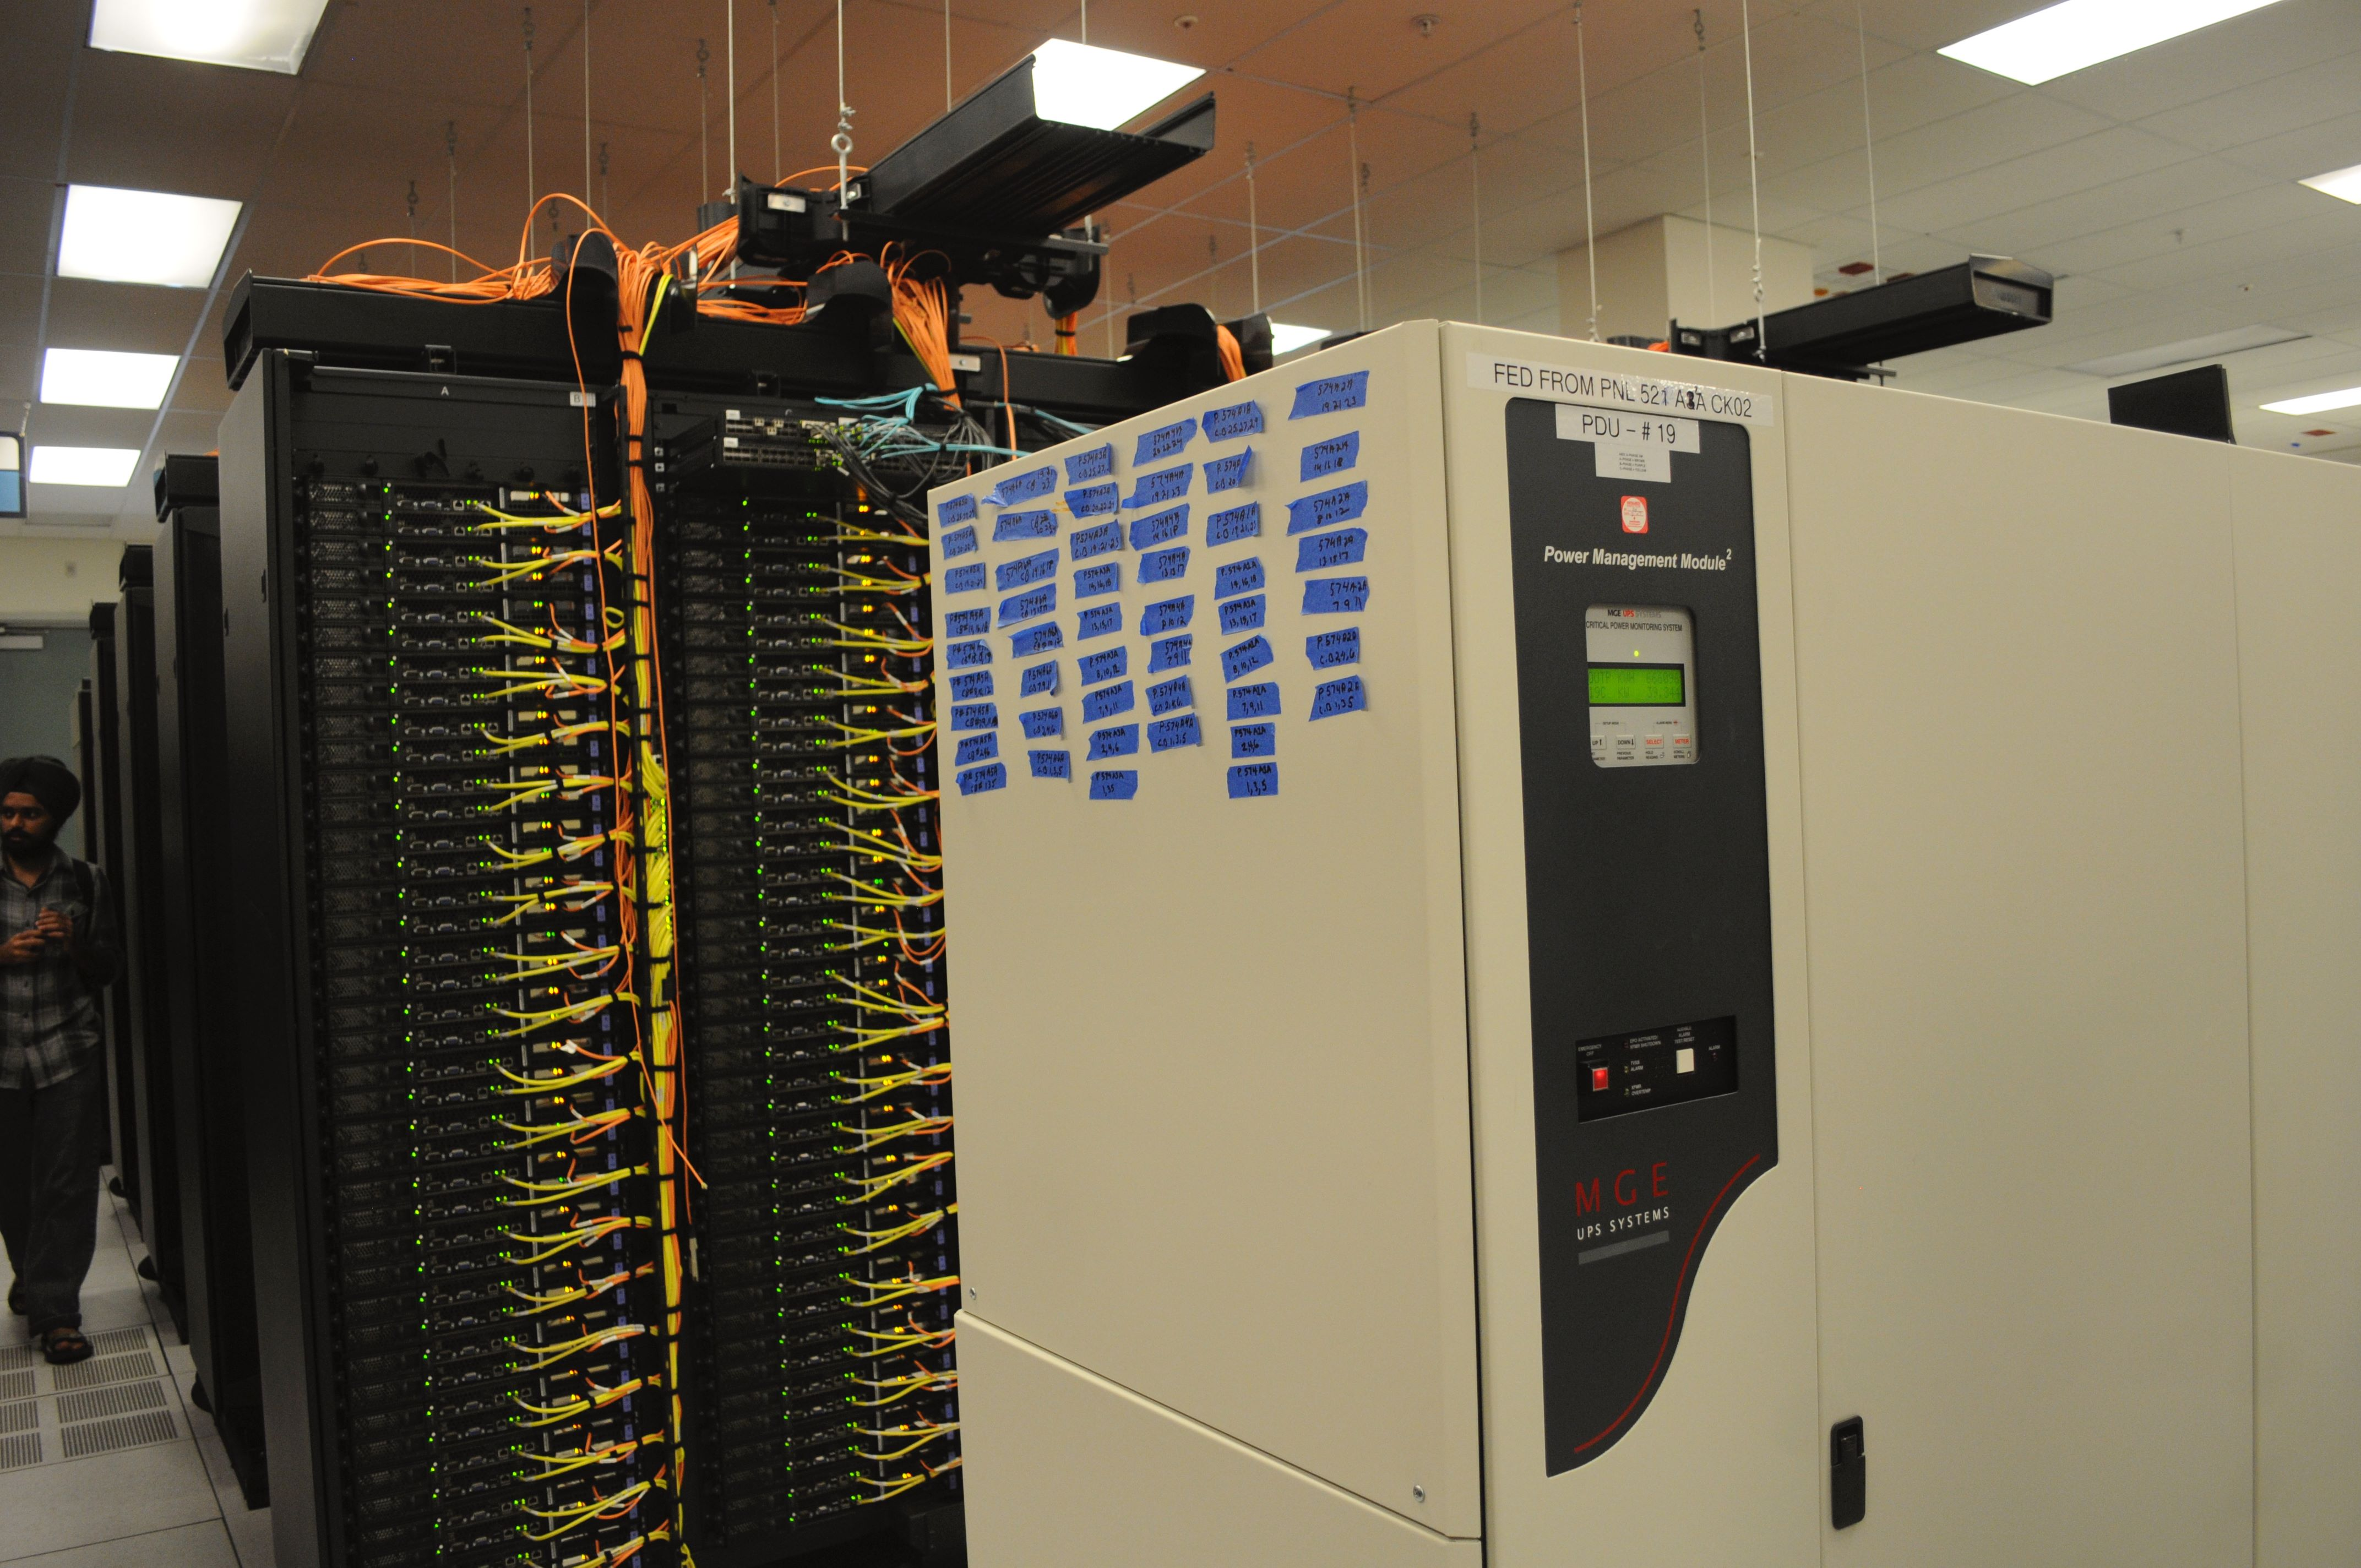 Fileups Power Management Module Racks With Network Cabling In Data Center Wiring Nersc